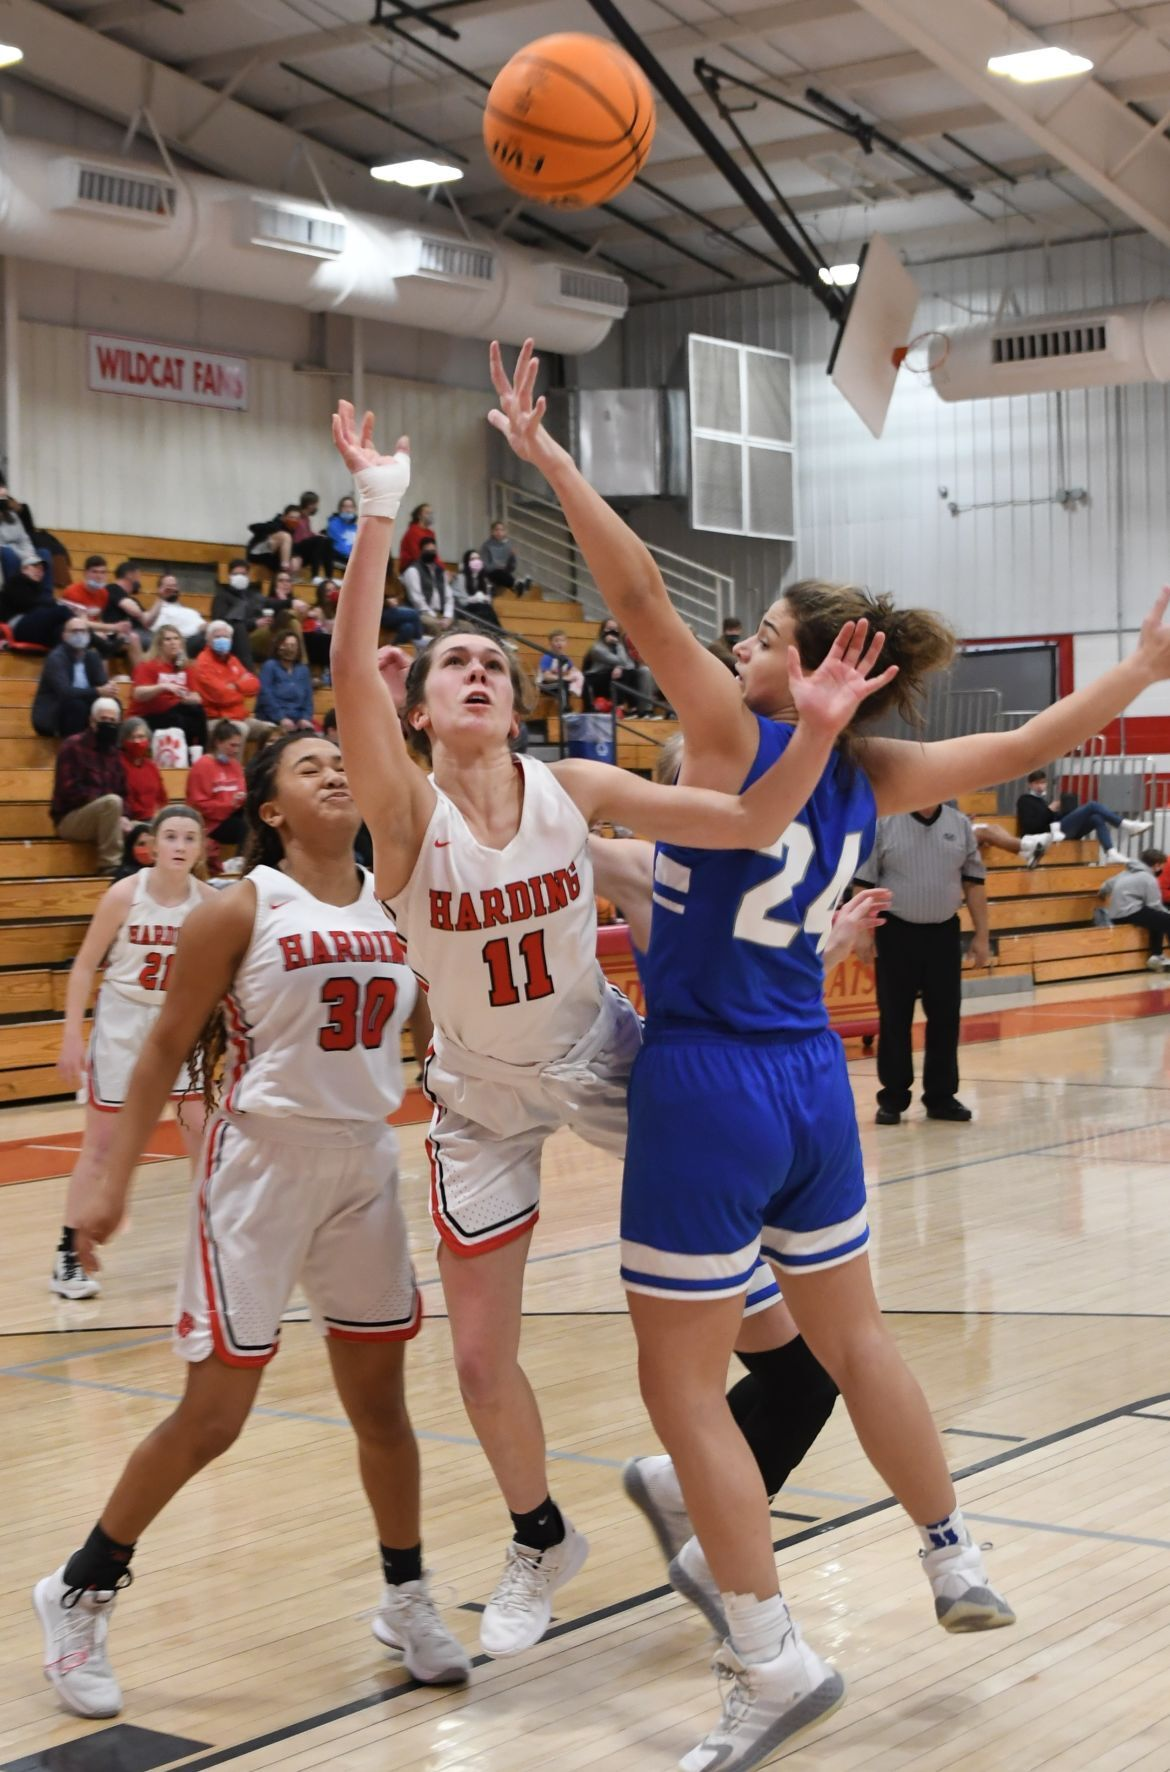 Harding Academy's Claire Cullins fights to get off shot